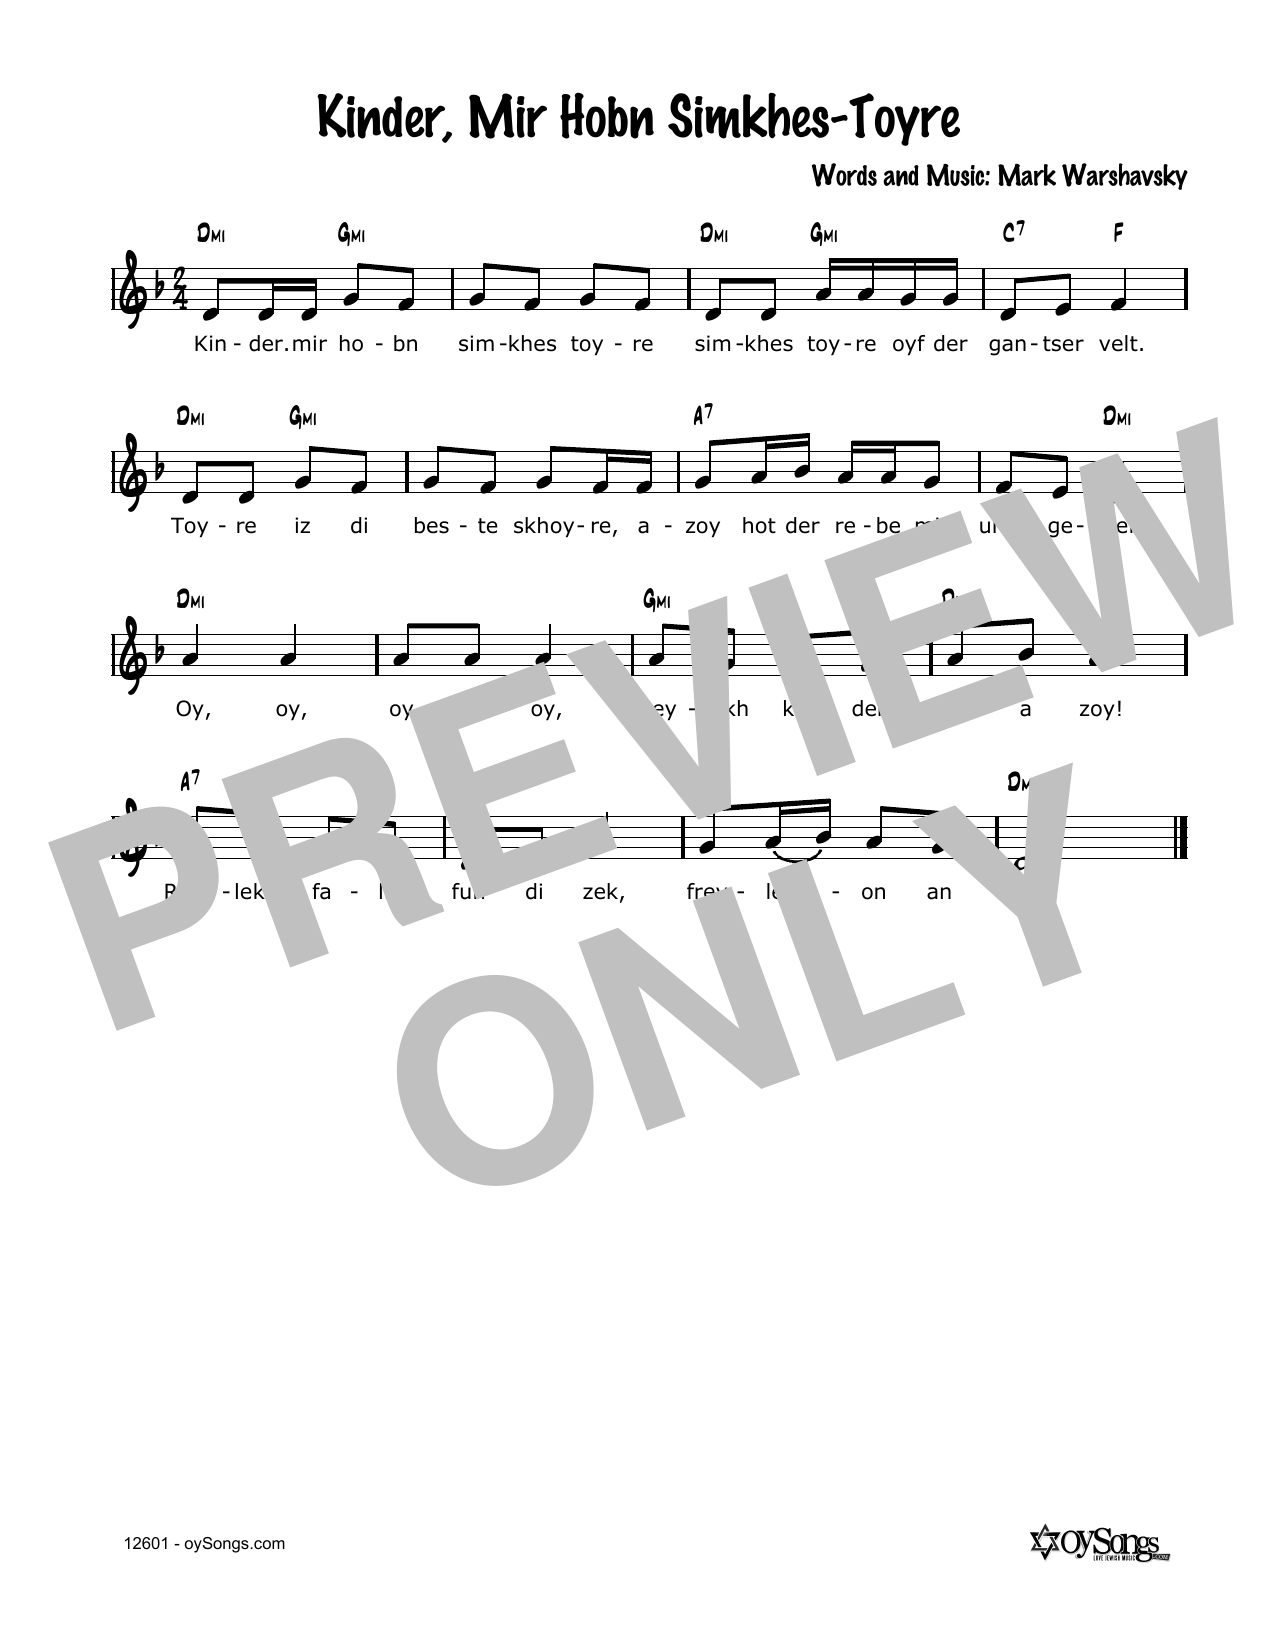 Cindy Paley Kinder, Mir Hobn Simkhes-Toyre sheet music notes and chords. Download Printable PDF.